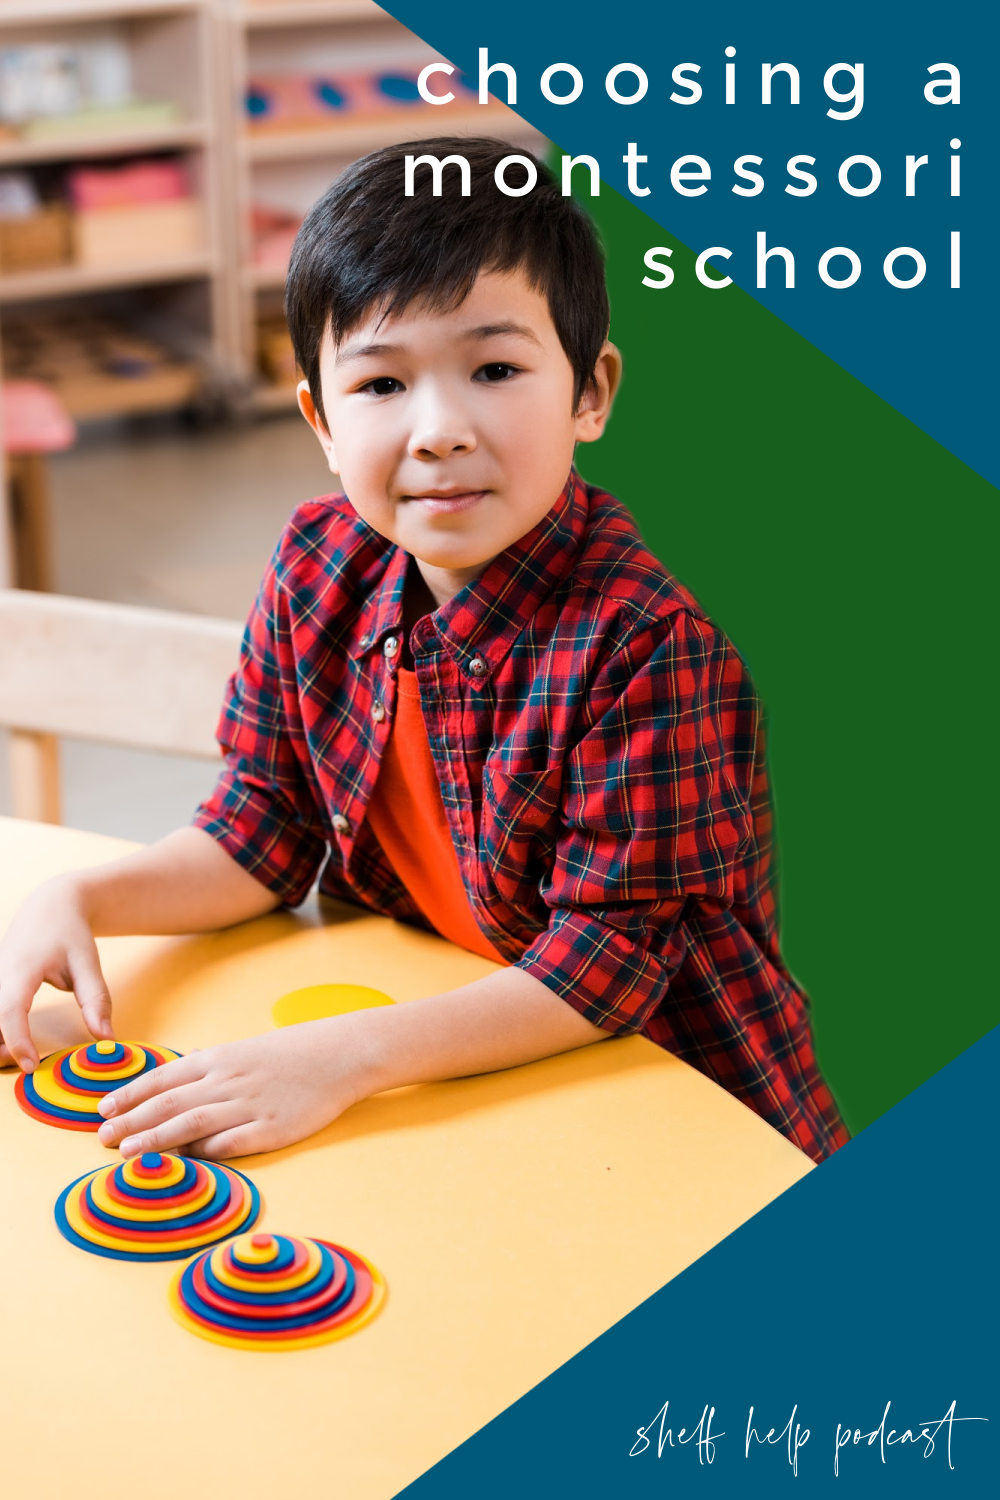 In this Montessori parenting podcast, we give tips on how to choose the best Montessori school for your family including private vs. public options.